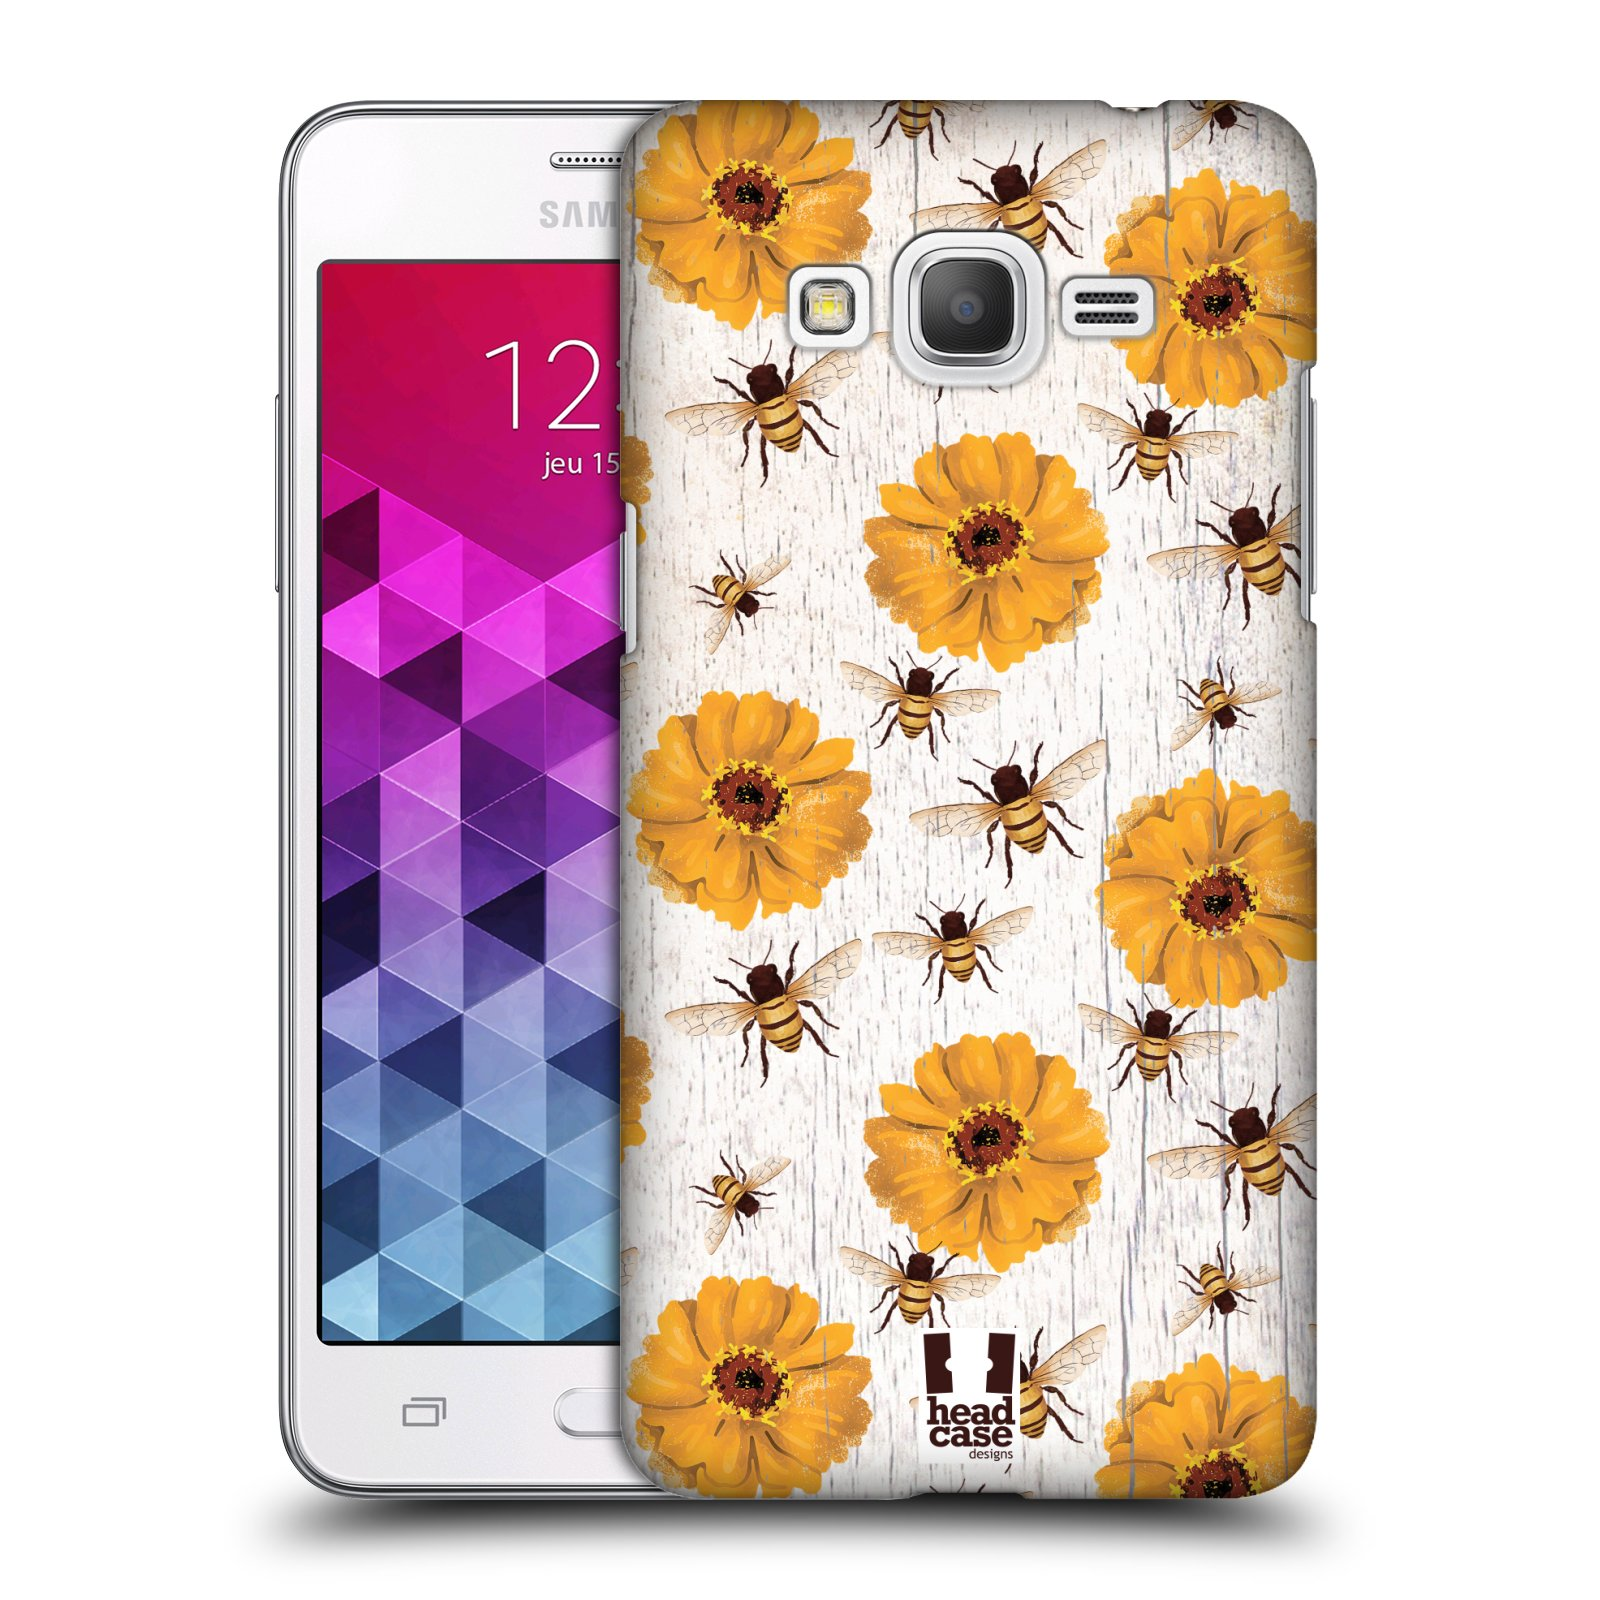 Plastové pouzdro na mobil Samsung Galaxy Grand Prime VE HEAD CASE LIFE IN THE COUNTRY ZINNIAS